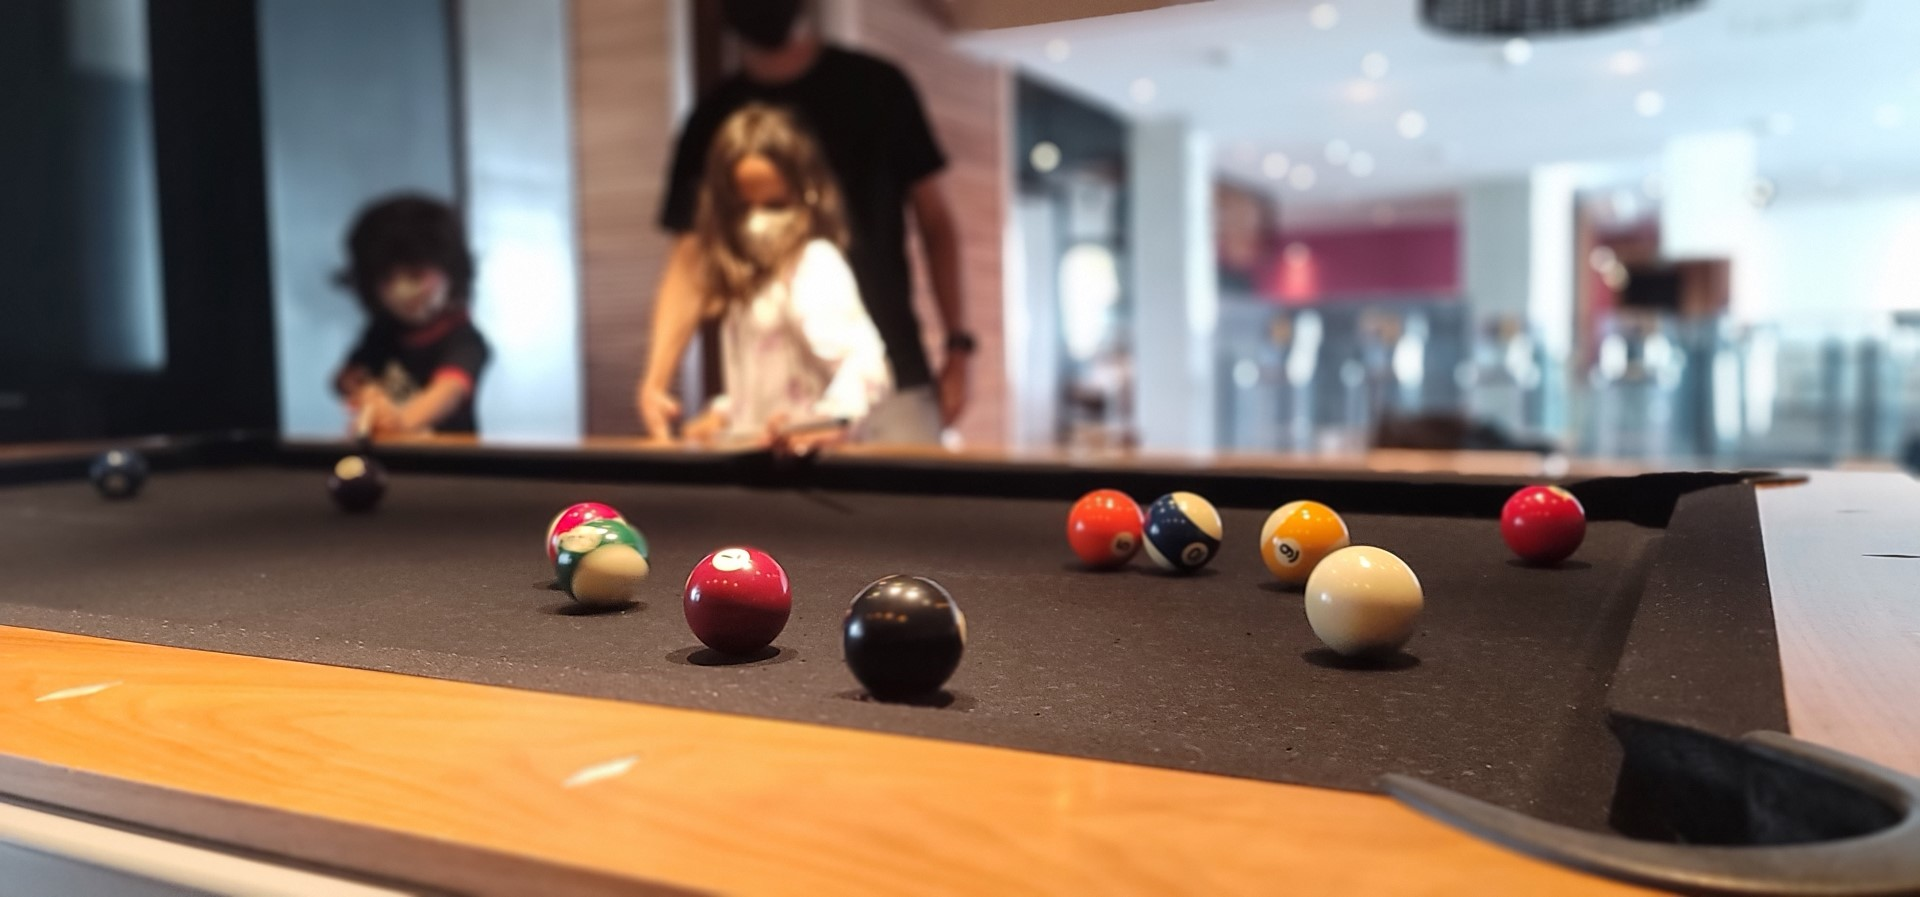 pool table at Alt hotel in halifax airport